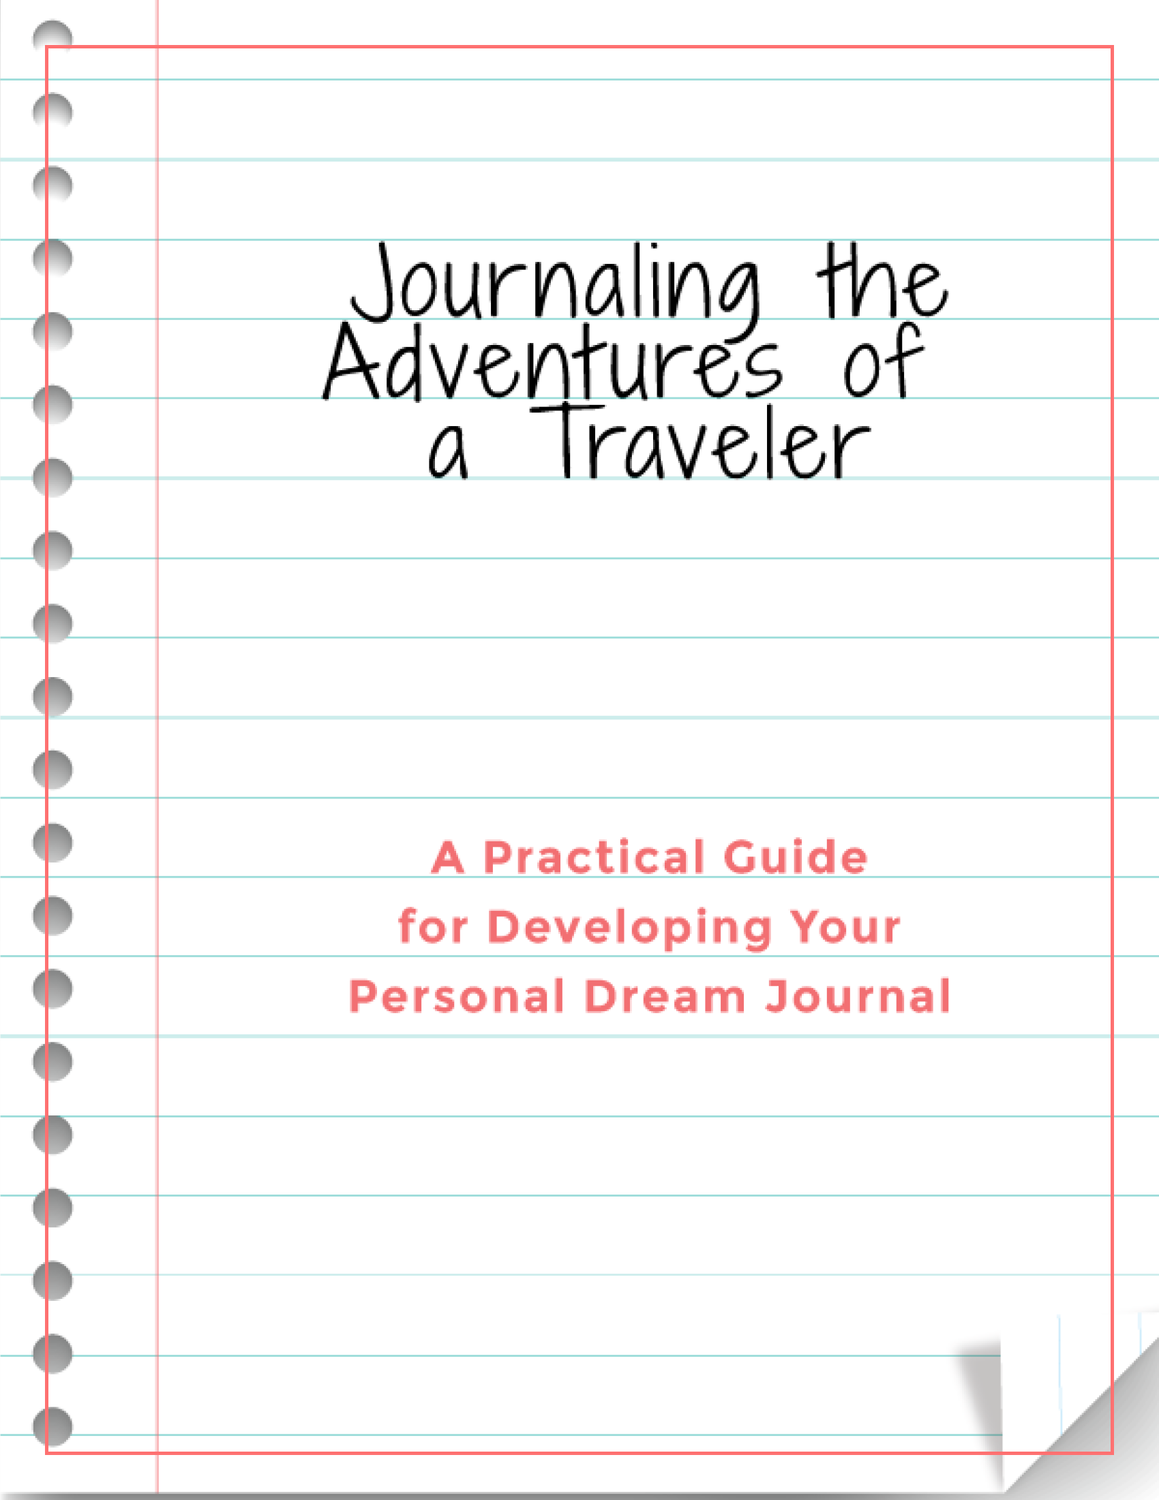 FREE DREAM JOURNAL TEMPLATE PAGES The Easy Steps To Unlock Your Dream Journal